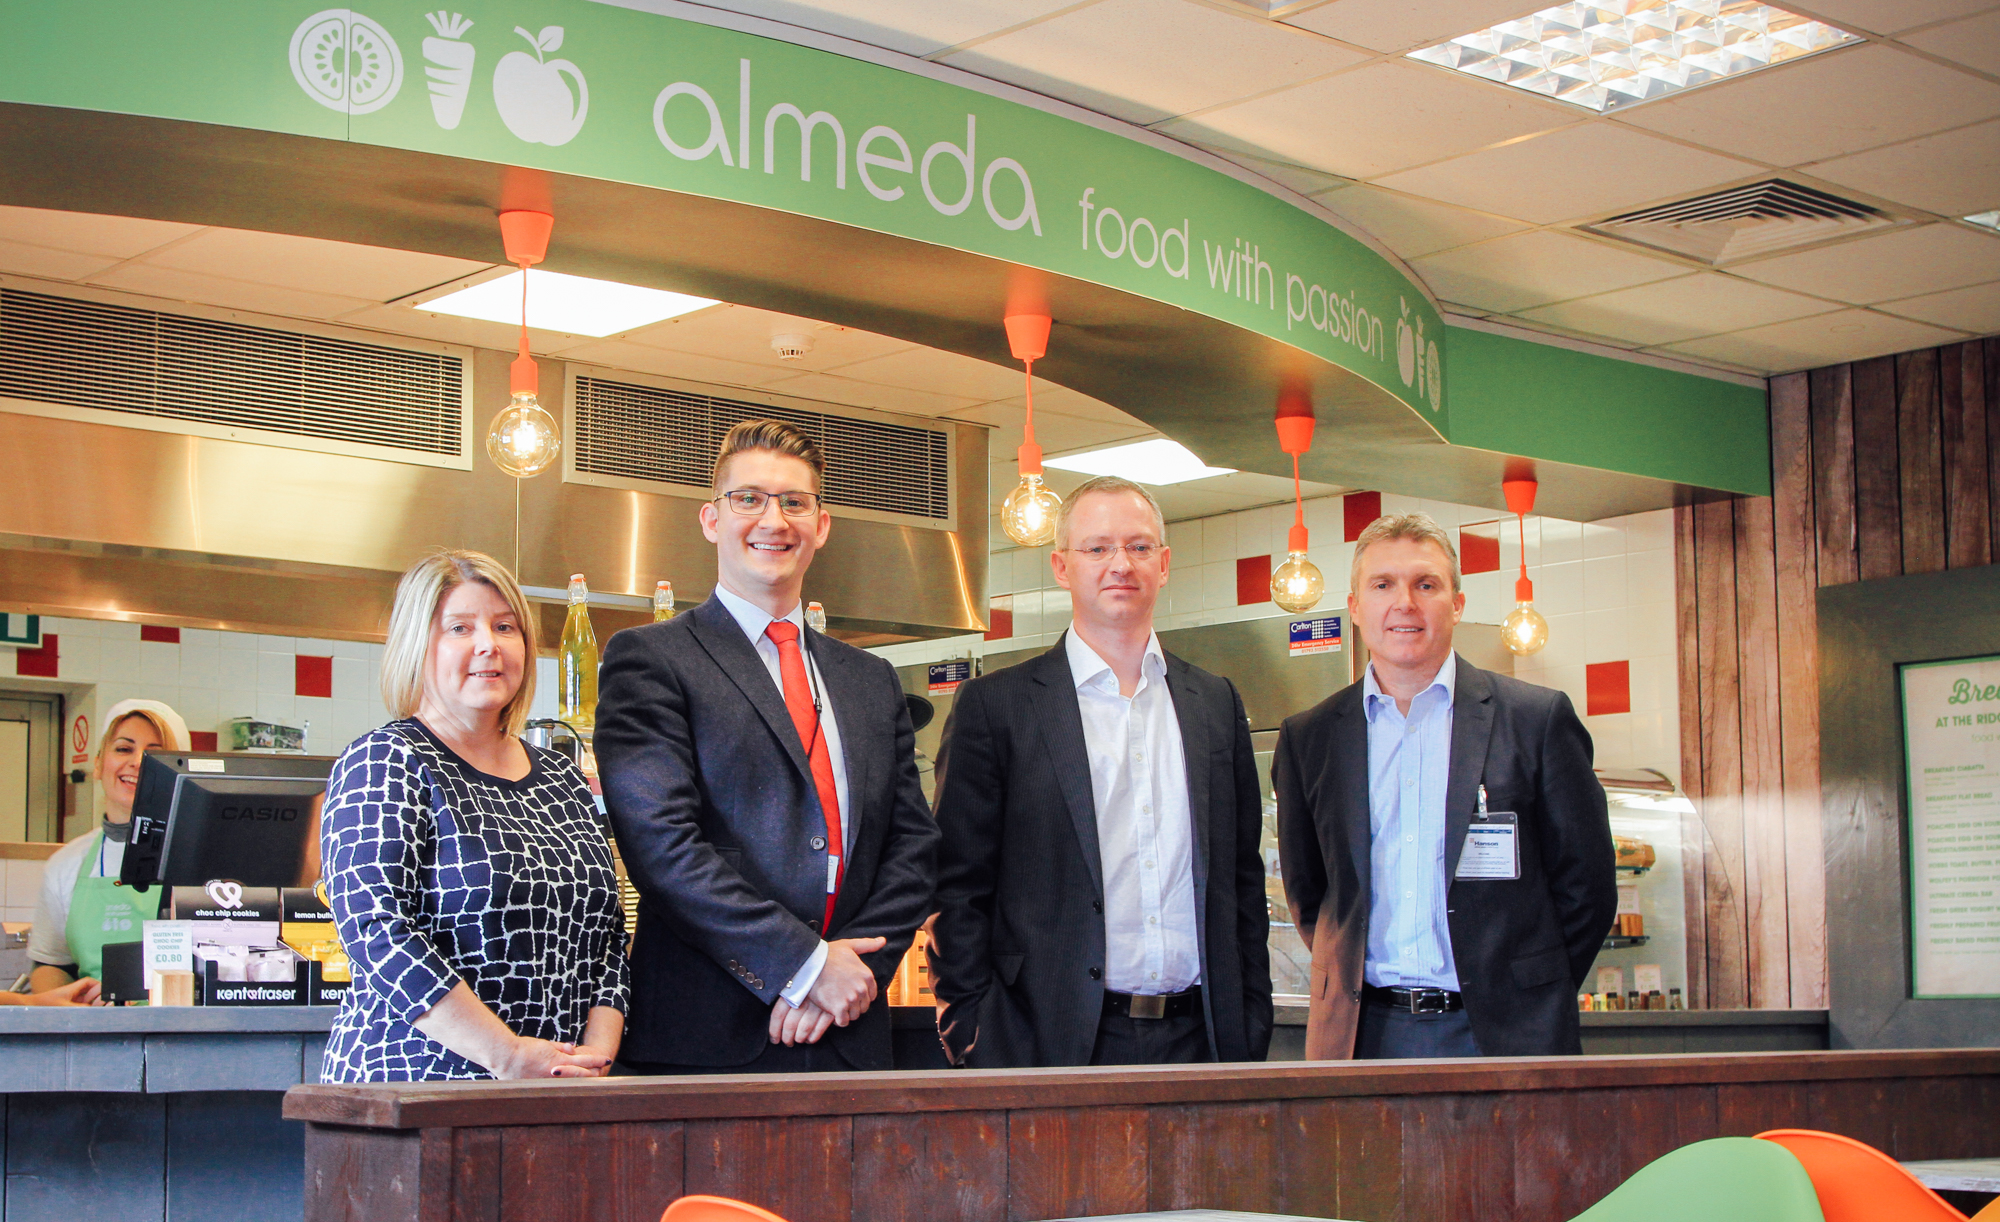 Almeda launches first 'food with passion' staff restaurant